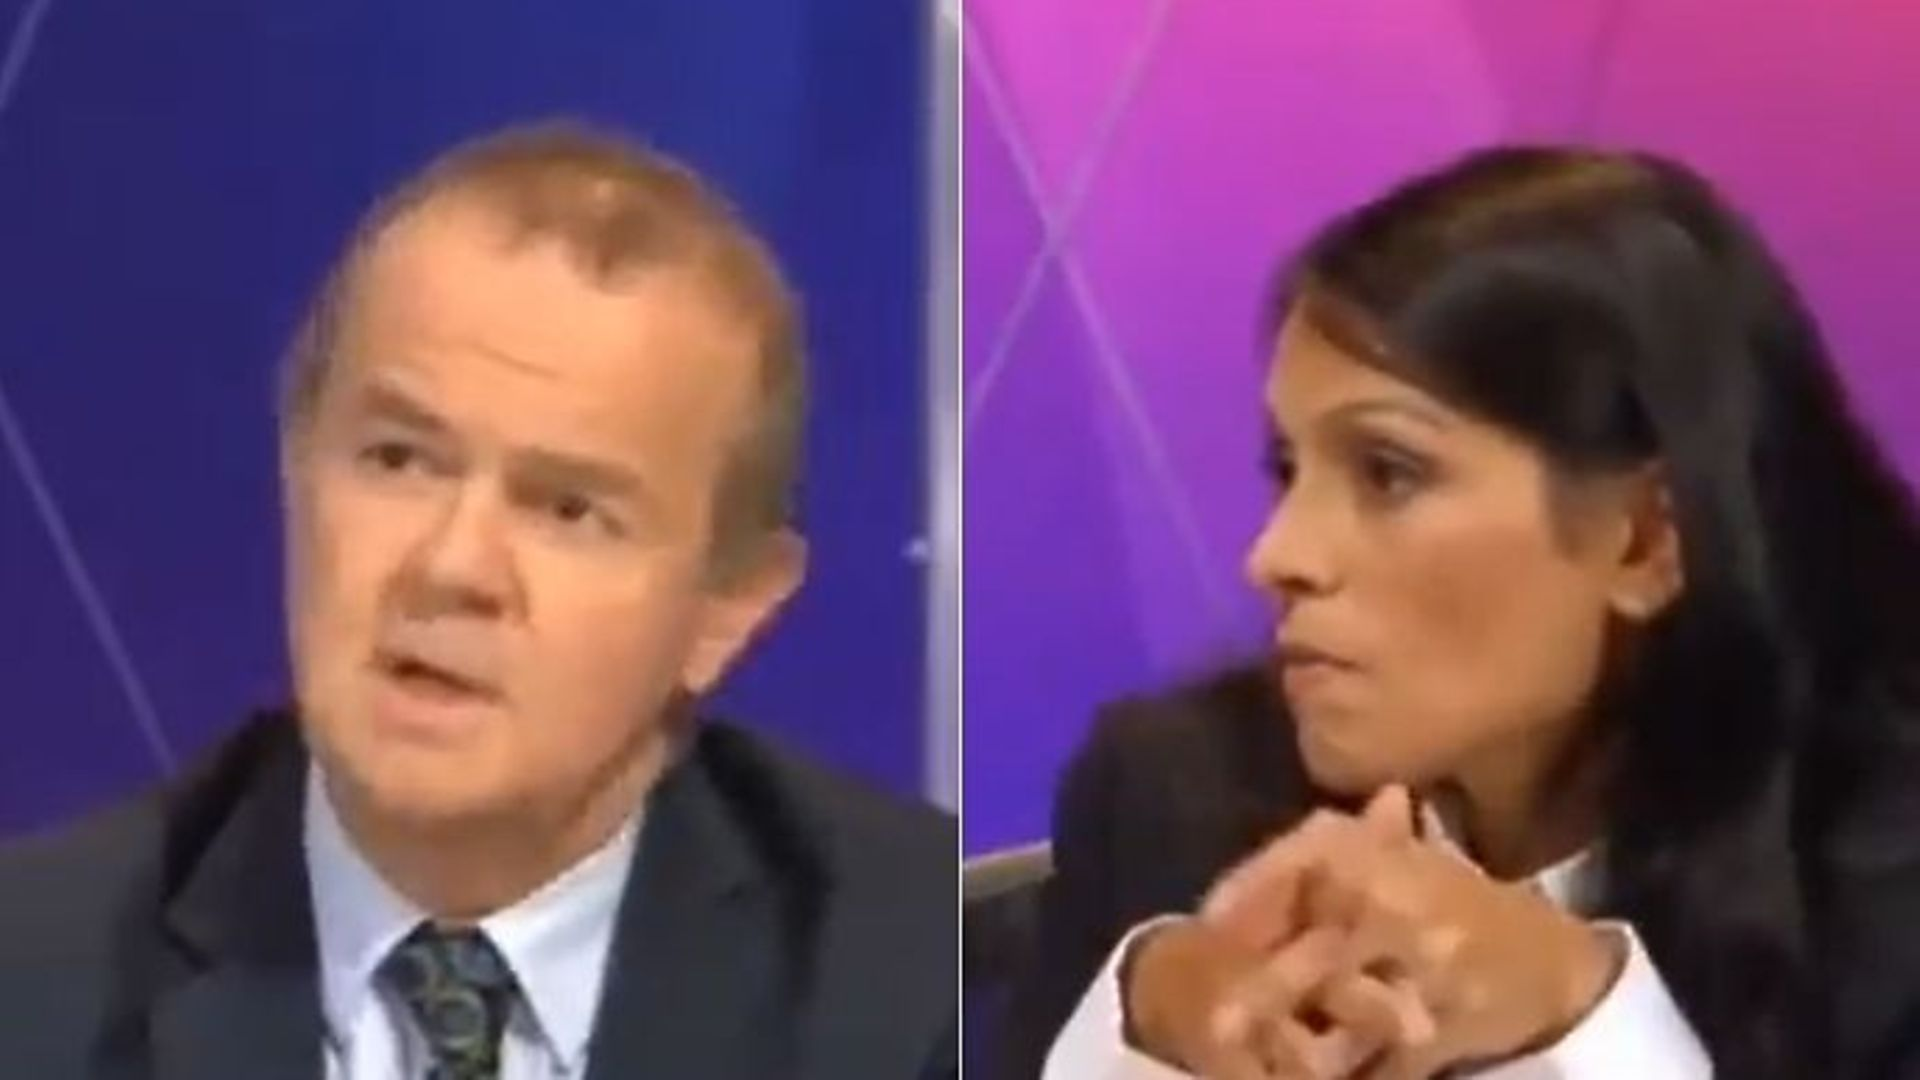 Ian Hislop (L) and Priti Patel on Question Time - Credit: Twitter